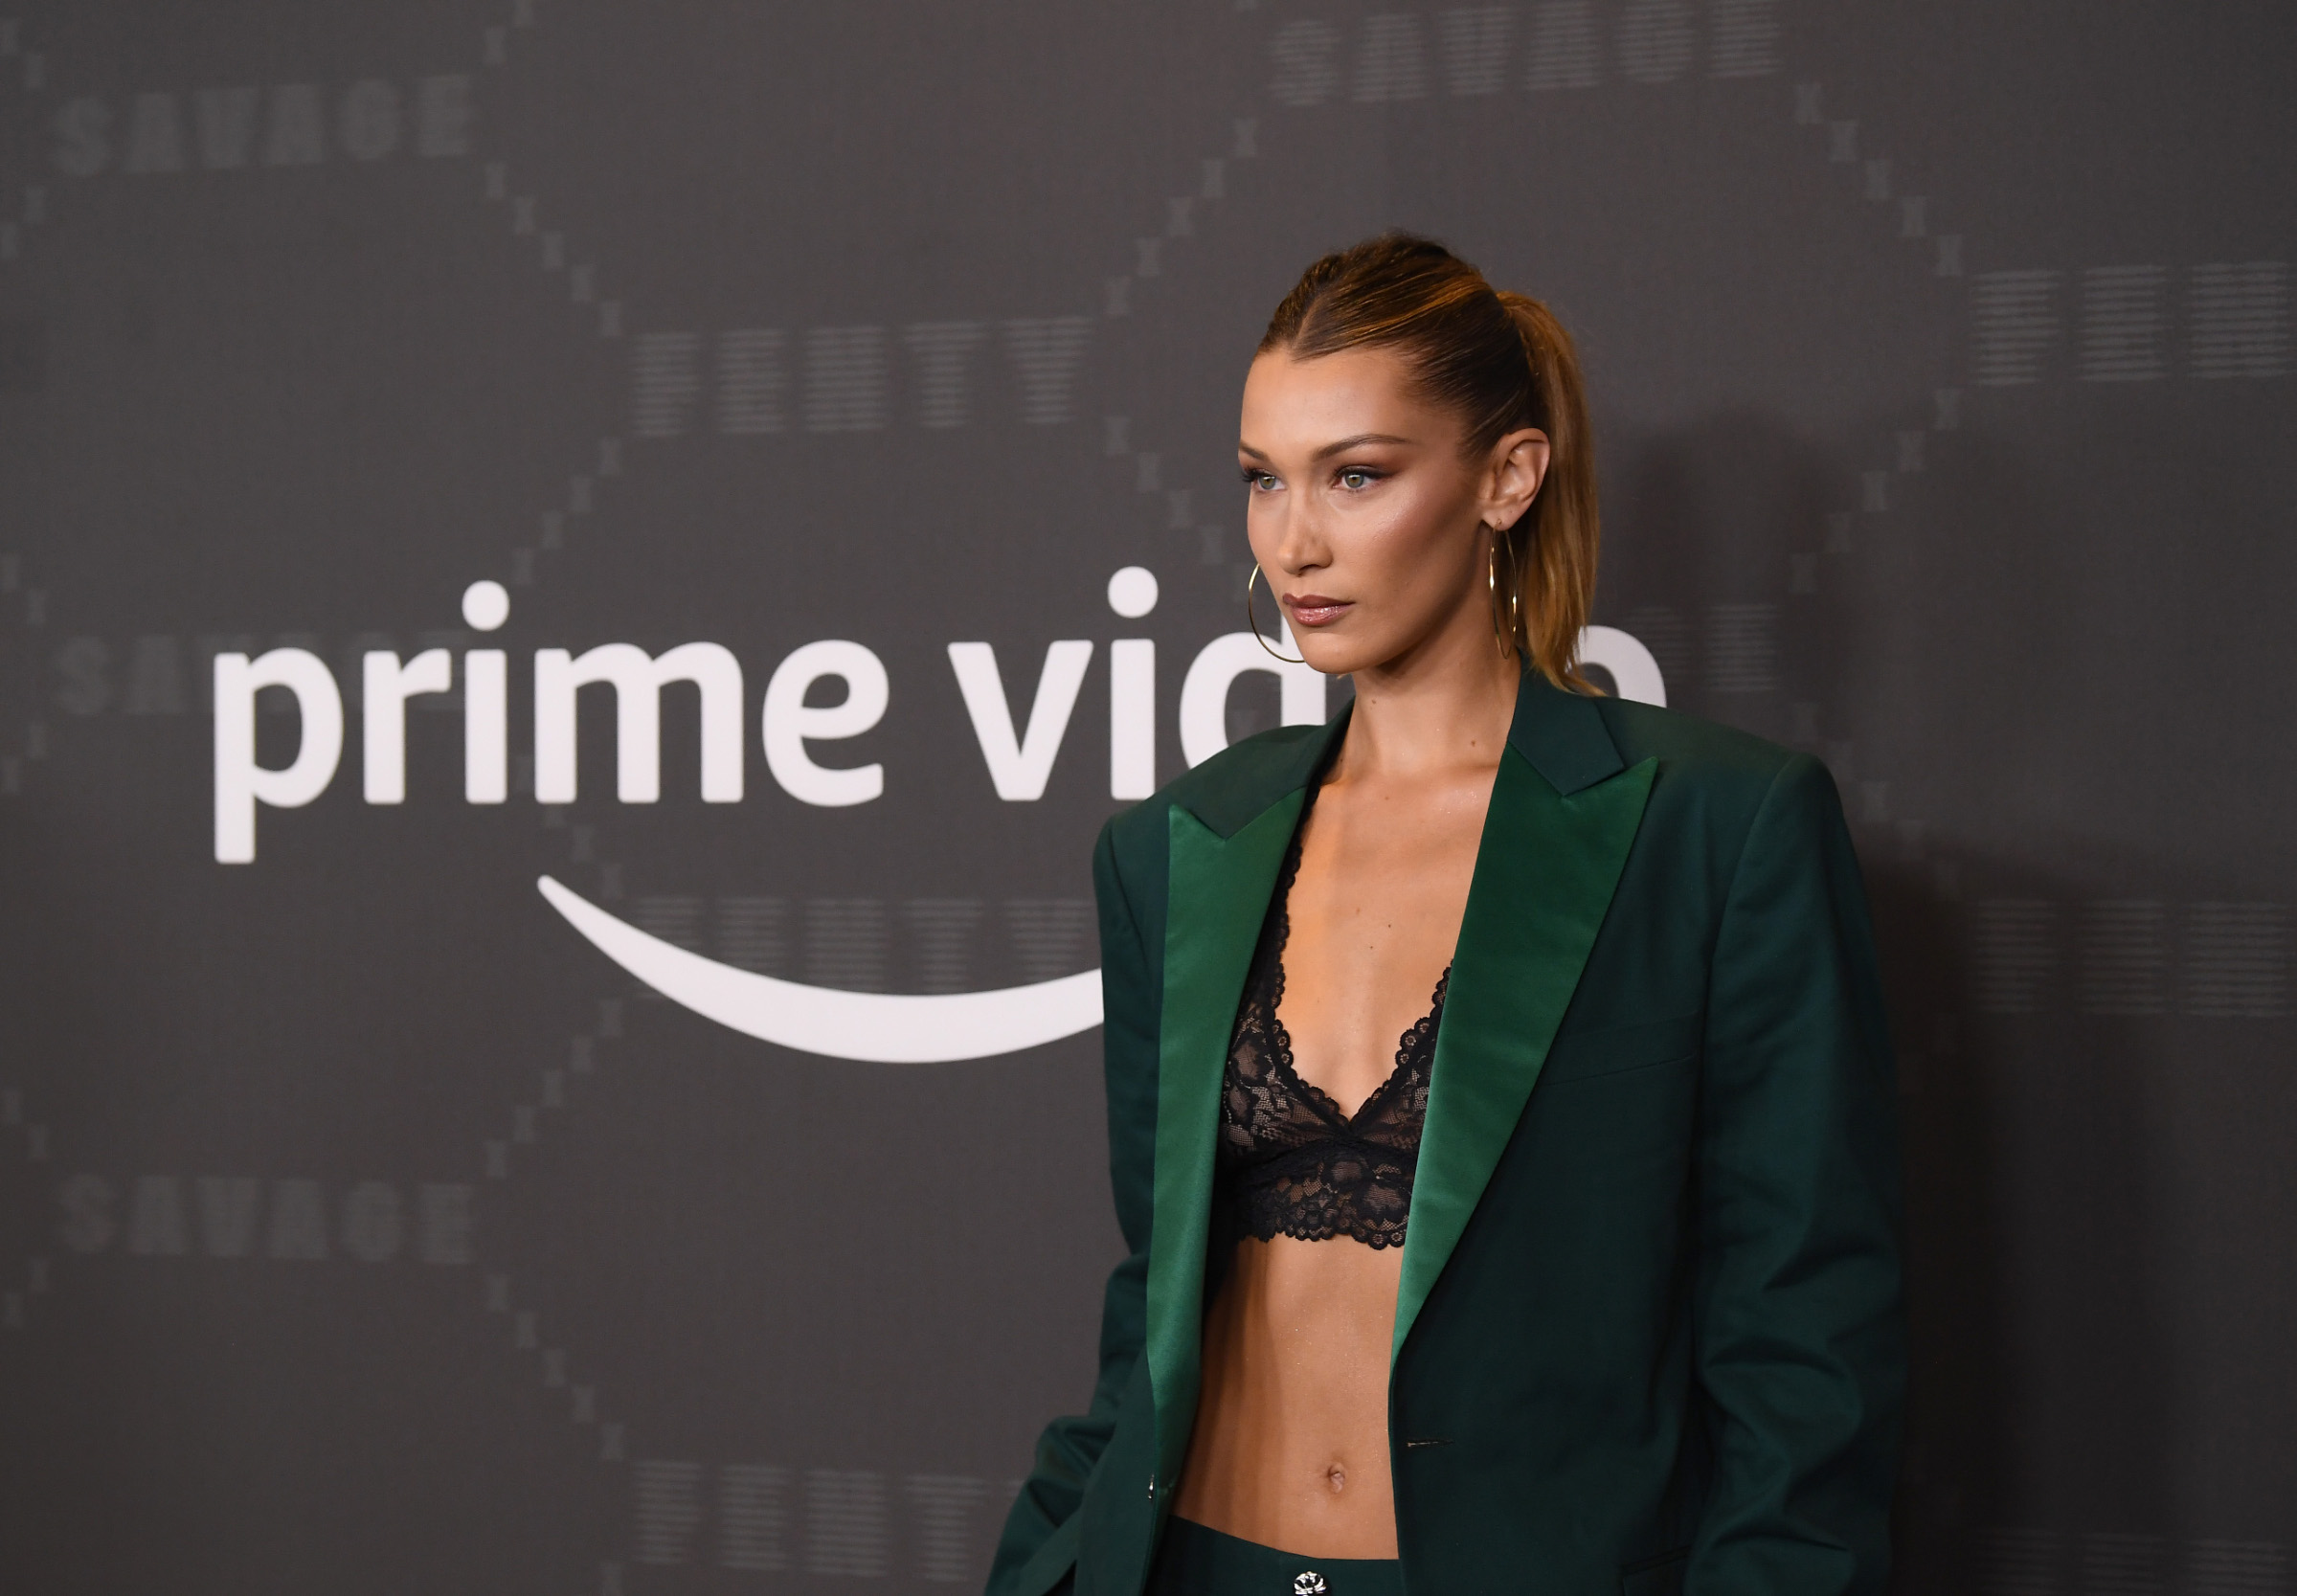 BROOKLYN, NEW YORK - SEPTEMBER 10: Bella Hadid attends Savage X Fenty Show Presented By Amazon Prime Video - Arrivals at Barclays Center on September 10, 2019 in Brooklyn, New York. (Photo by Dimitrios Kambouris/Getty Images for Savage X Fenty Show Presented by Amazon Prime Video )